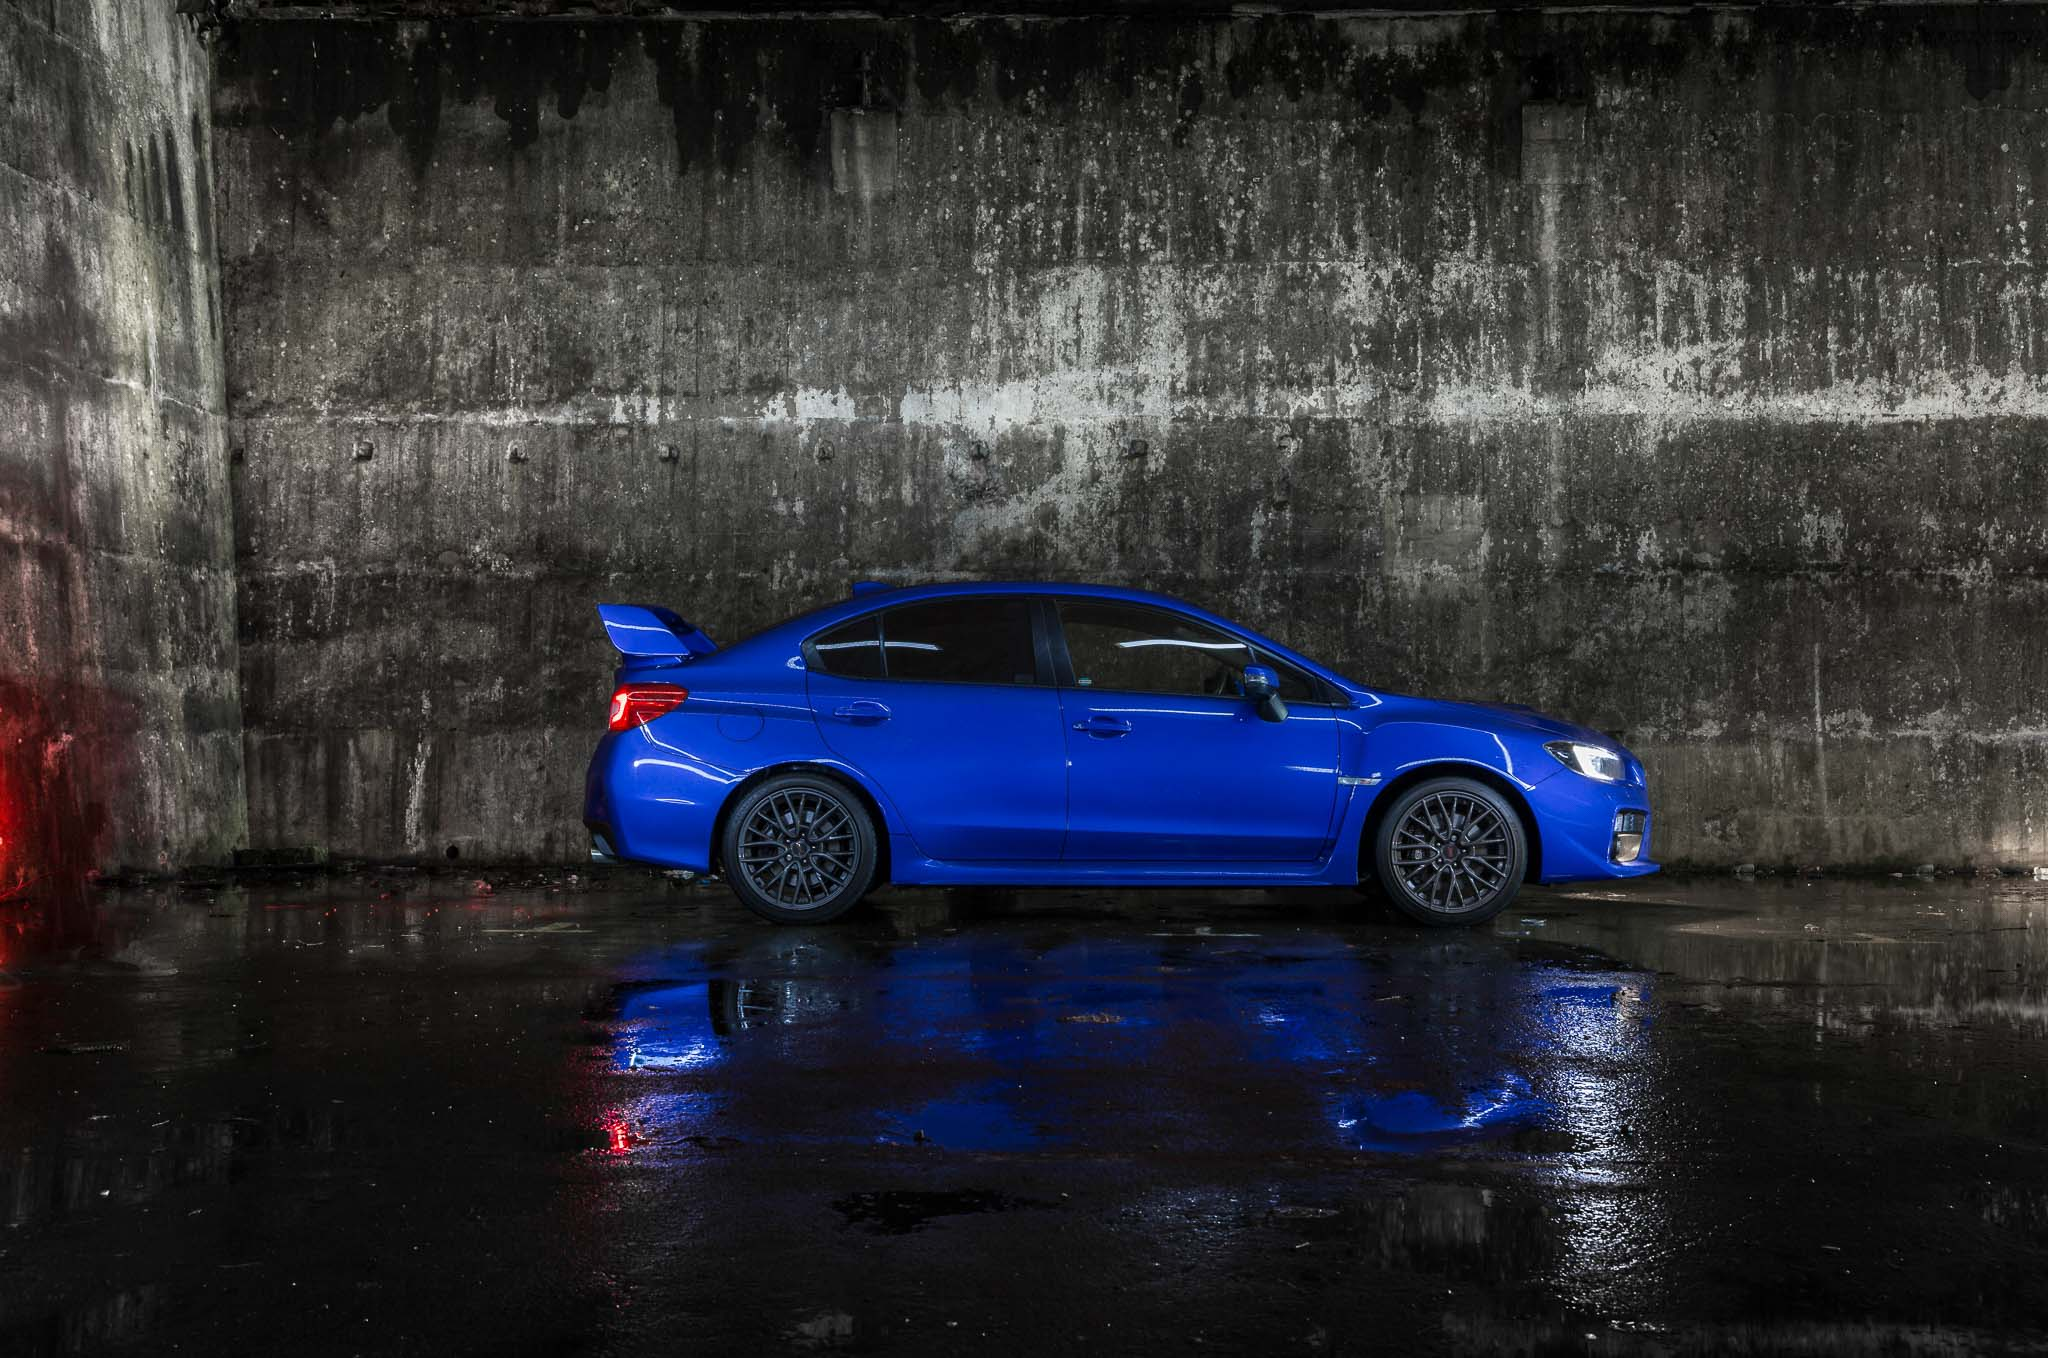 The 2017 Subaru Wrx Sti A Review On This Year S Hot Subaru